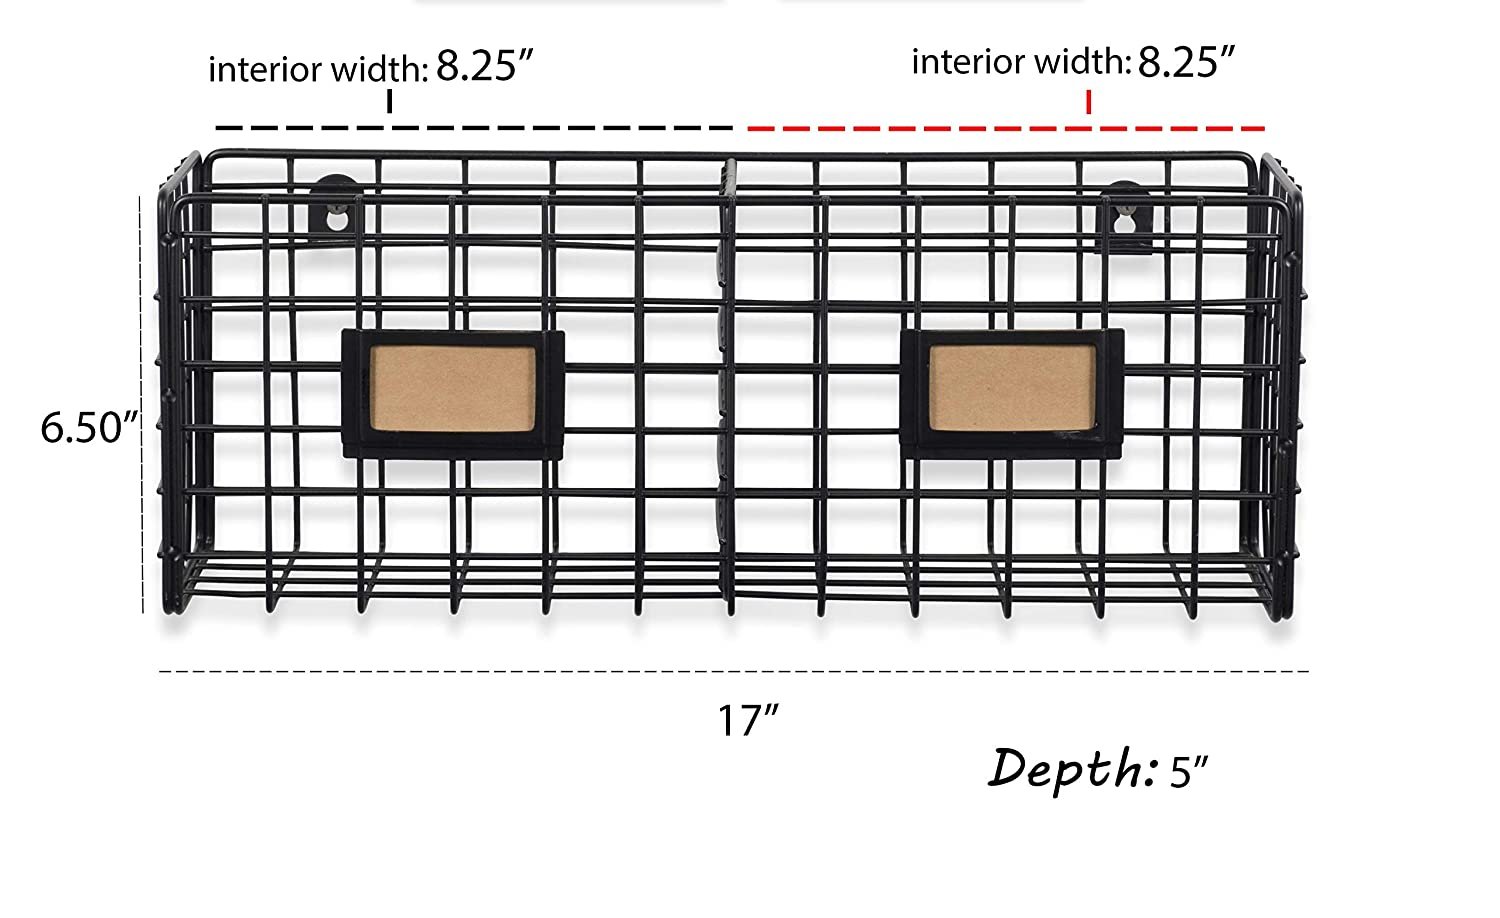 Shelf Desktop Organizer Rack WALL35 Metal Mesh Wire Basket Wall Mounted Space Saving Design for Home and Office Rustic Industrial Style